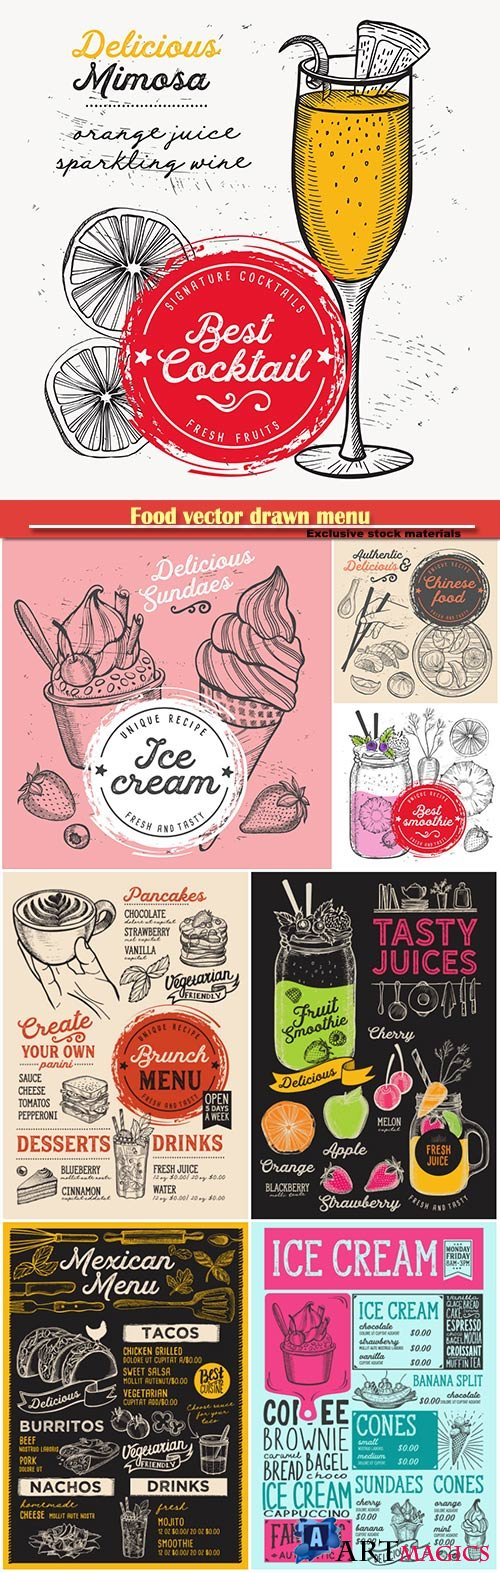 Food vector drawn menu, fast food, ice cream, desserts, mexican food